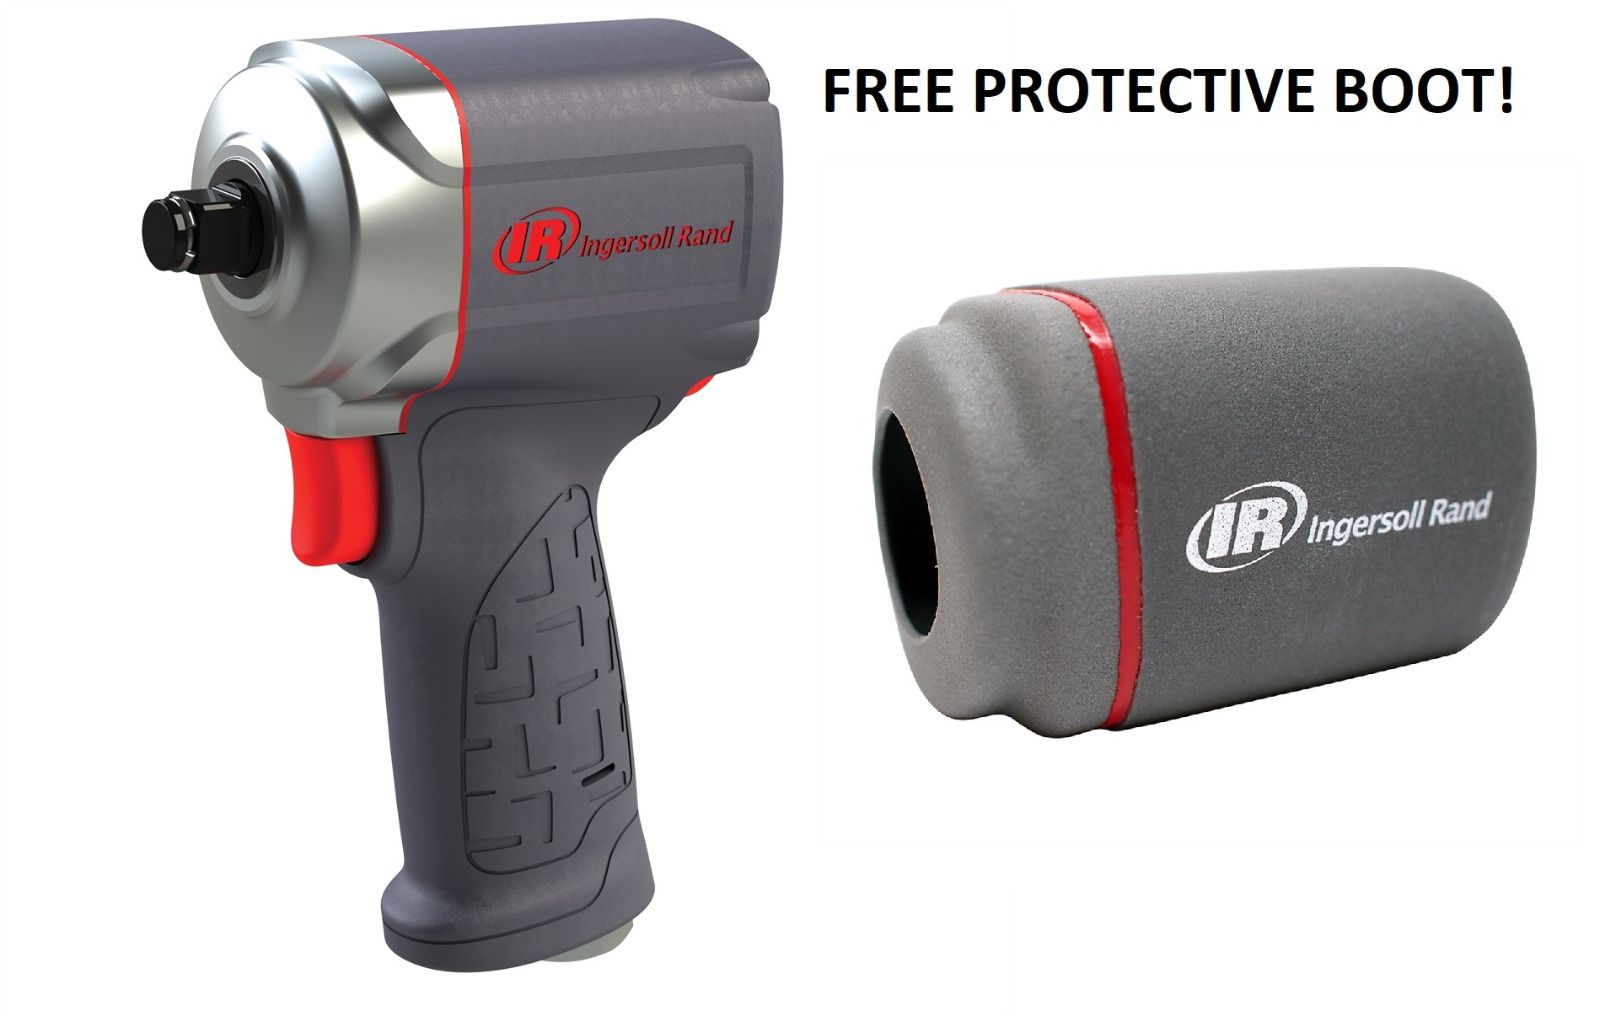 15QMAX xangussupplyx Ingersoll Rand 15QMAX 3/8 Drive Quiet Stubby Impact Gun Wrench With Free Boot!